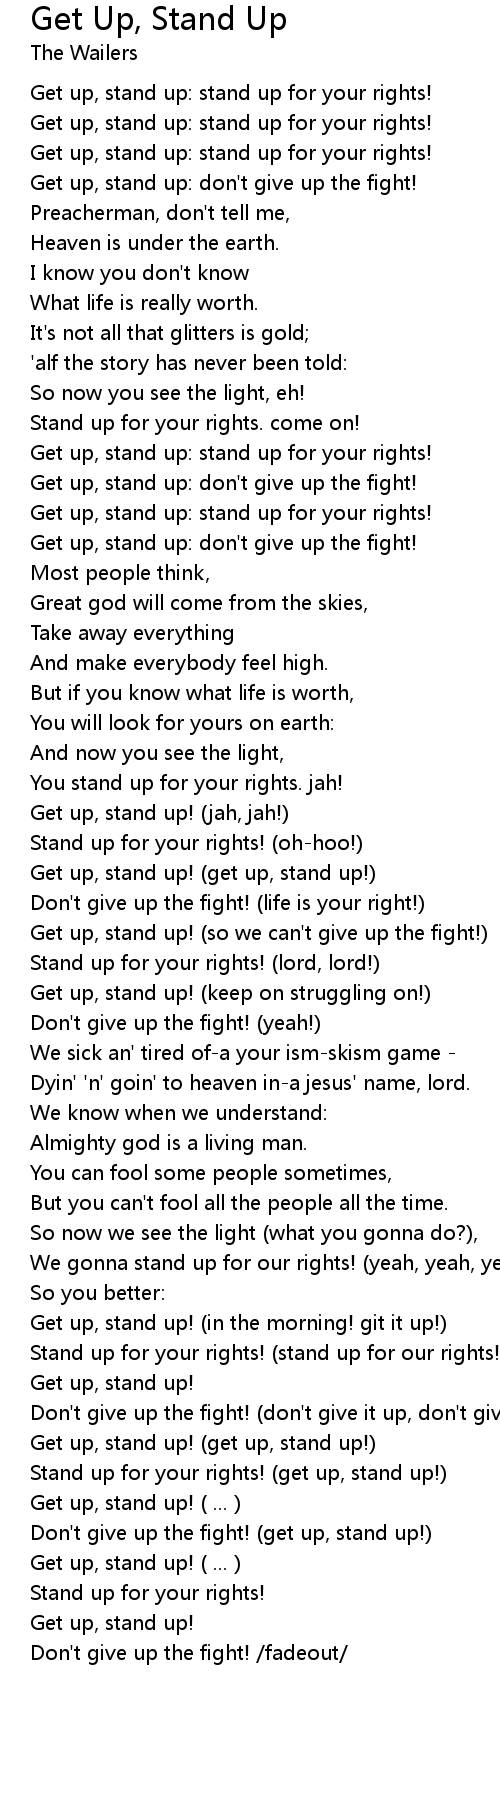 Get Up Stand Up Lyrics Follow Lyrics